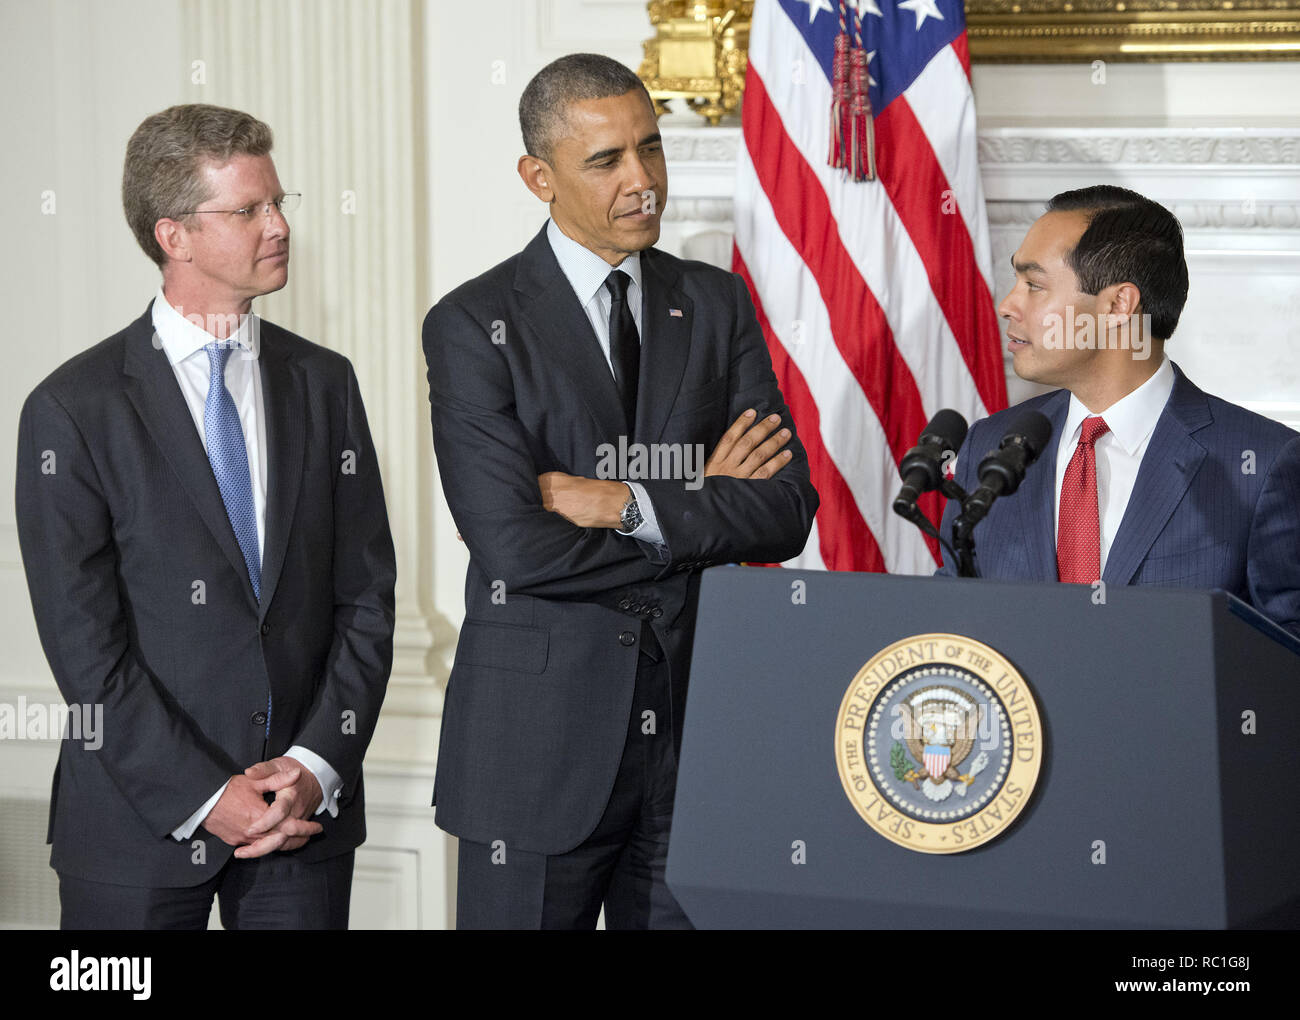 Washington, District of Columbia, USA. 23rd May, 2014. United States President Barack Obama, center, announces his nomination of current Housing and Urban Development (HUD) Secretary Shaun Donovan, left, as Office of Management and Budget (OMB) Director and his nomination of San Antonio Mayor Julián Castro, right, to replace him at HUD in the State Dining Room of the White House in Washington, DC on Friday, May 23, 2014 Credit: Ron Sachs/CNP/ZUMA Wire/Alamy Live News Stock Photo